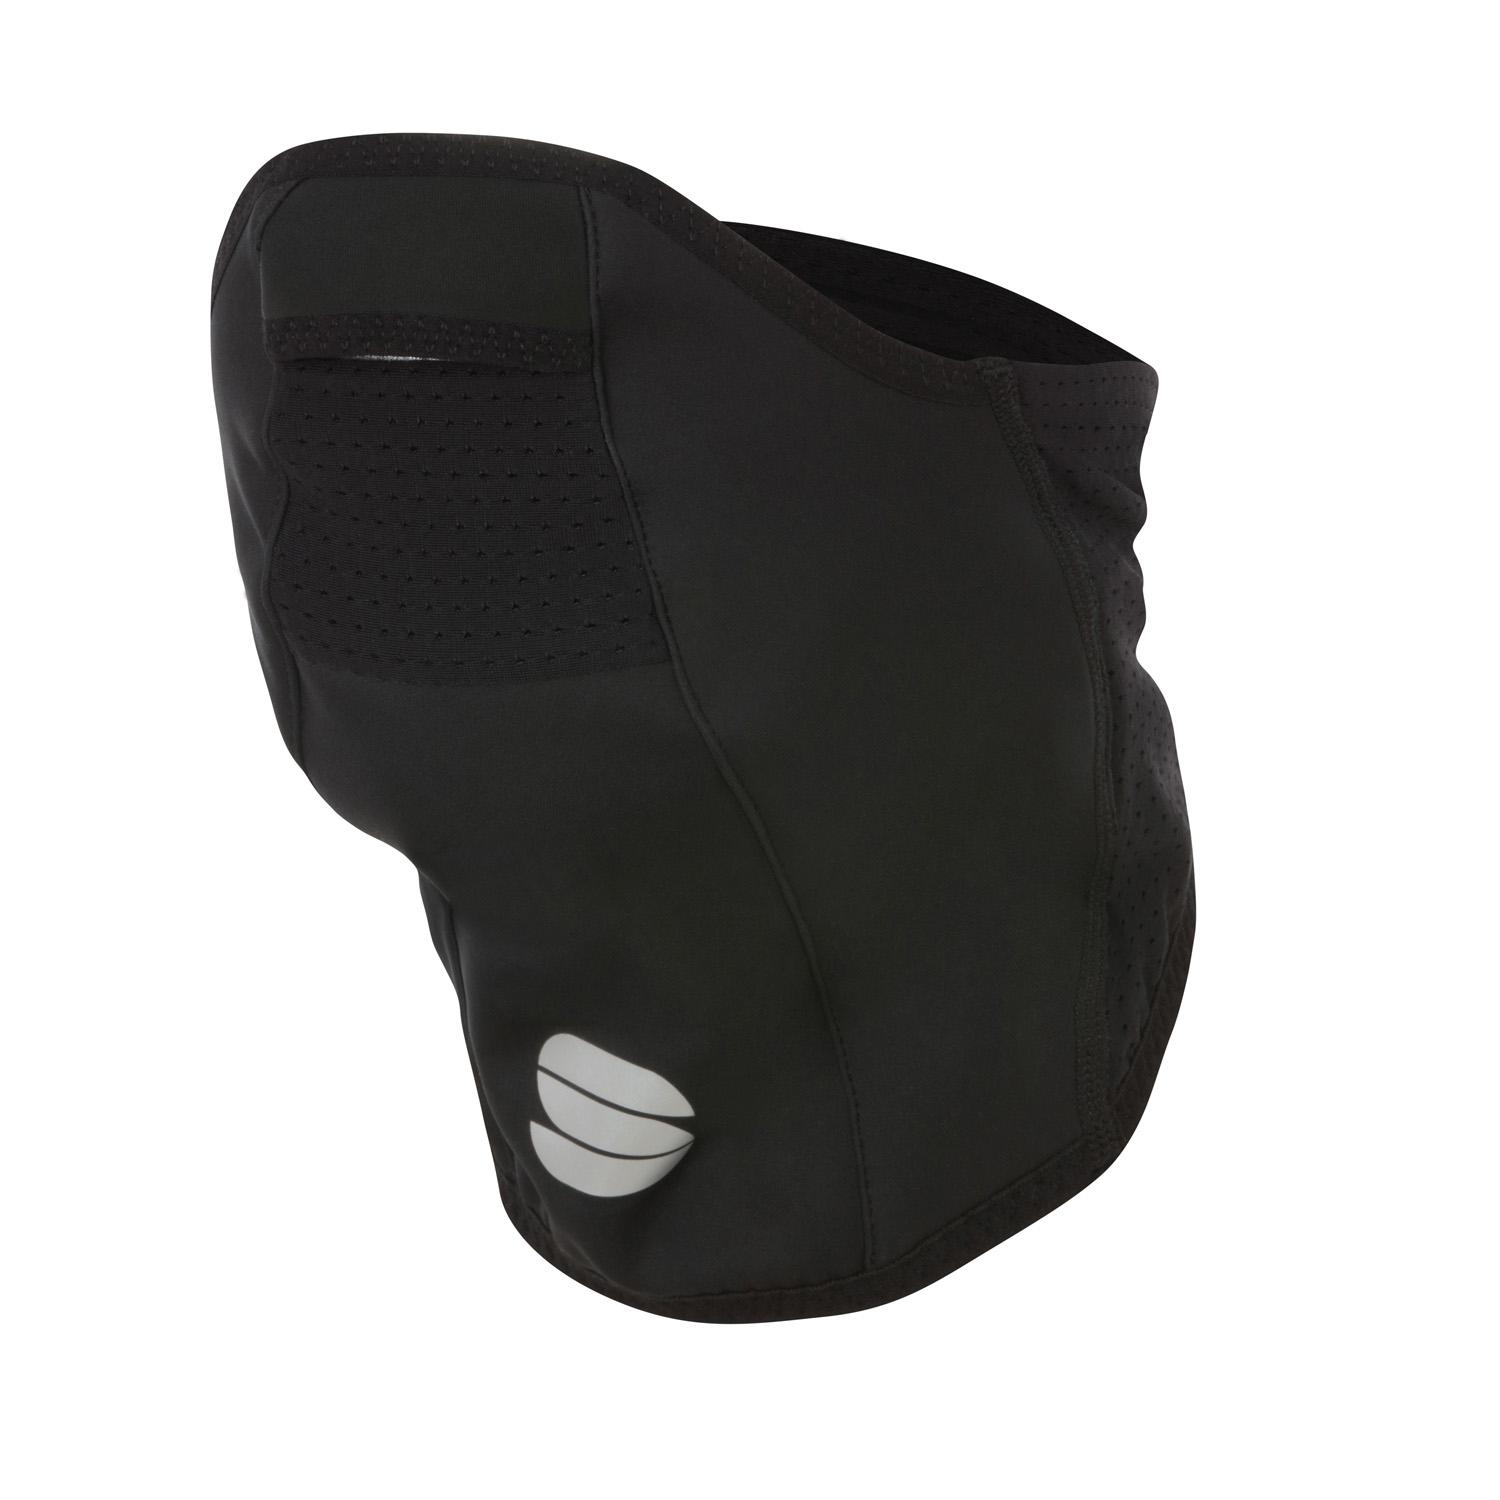 Sportful Balacalava Unisex Zwart - FACE MASK BLACK